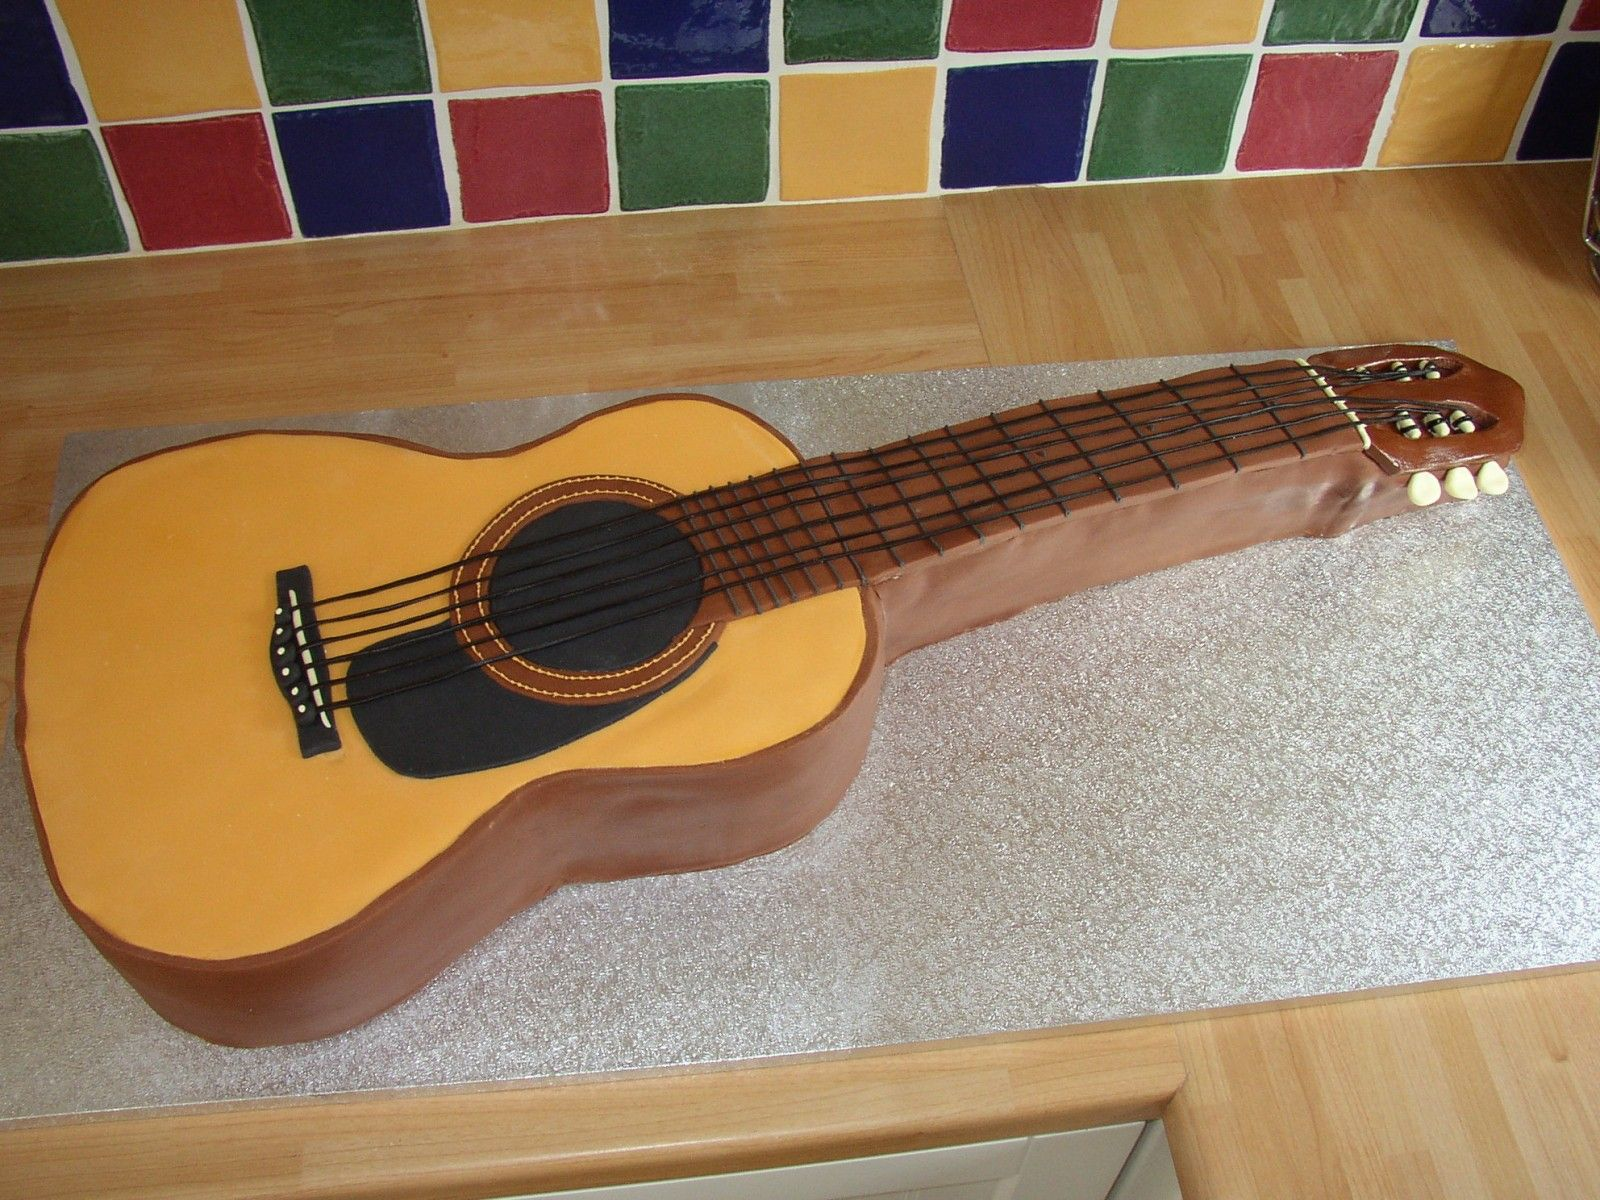 Acoustic Guitar Shaped Cake Ideas and Designs